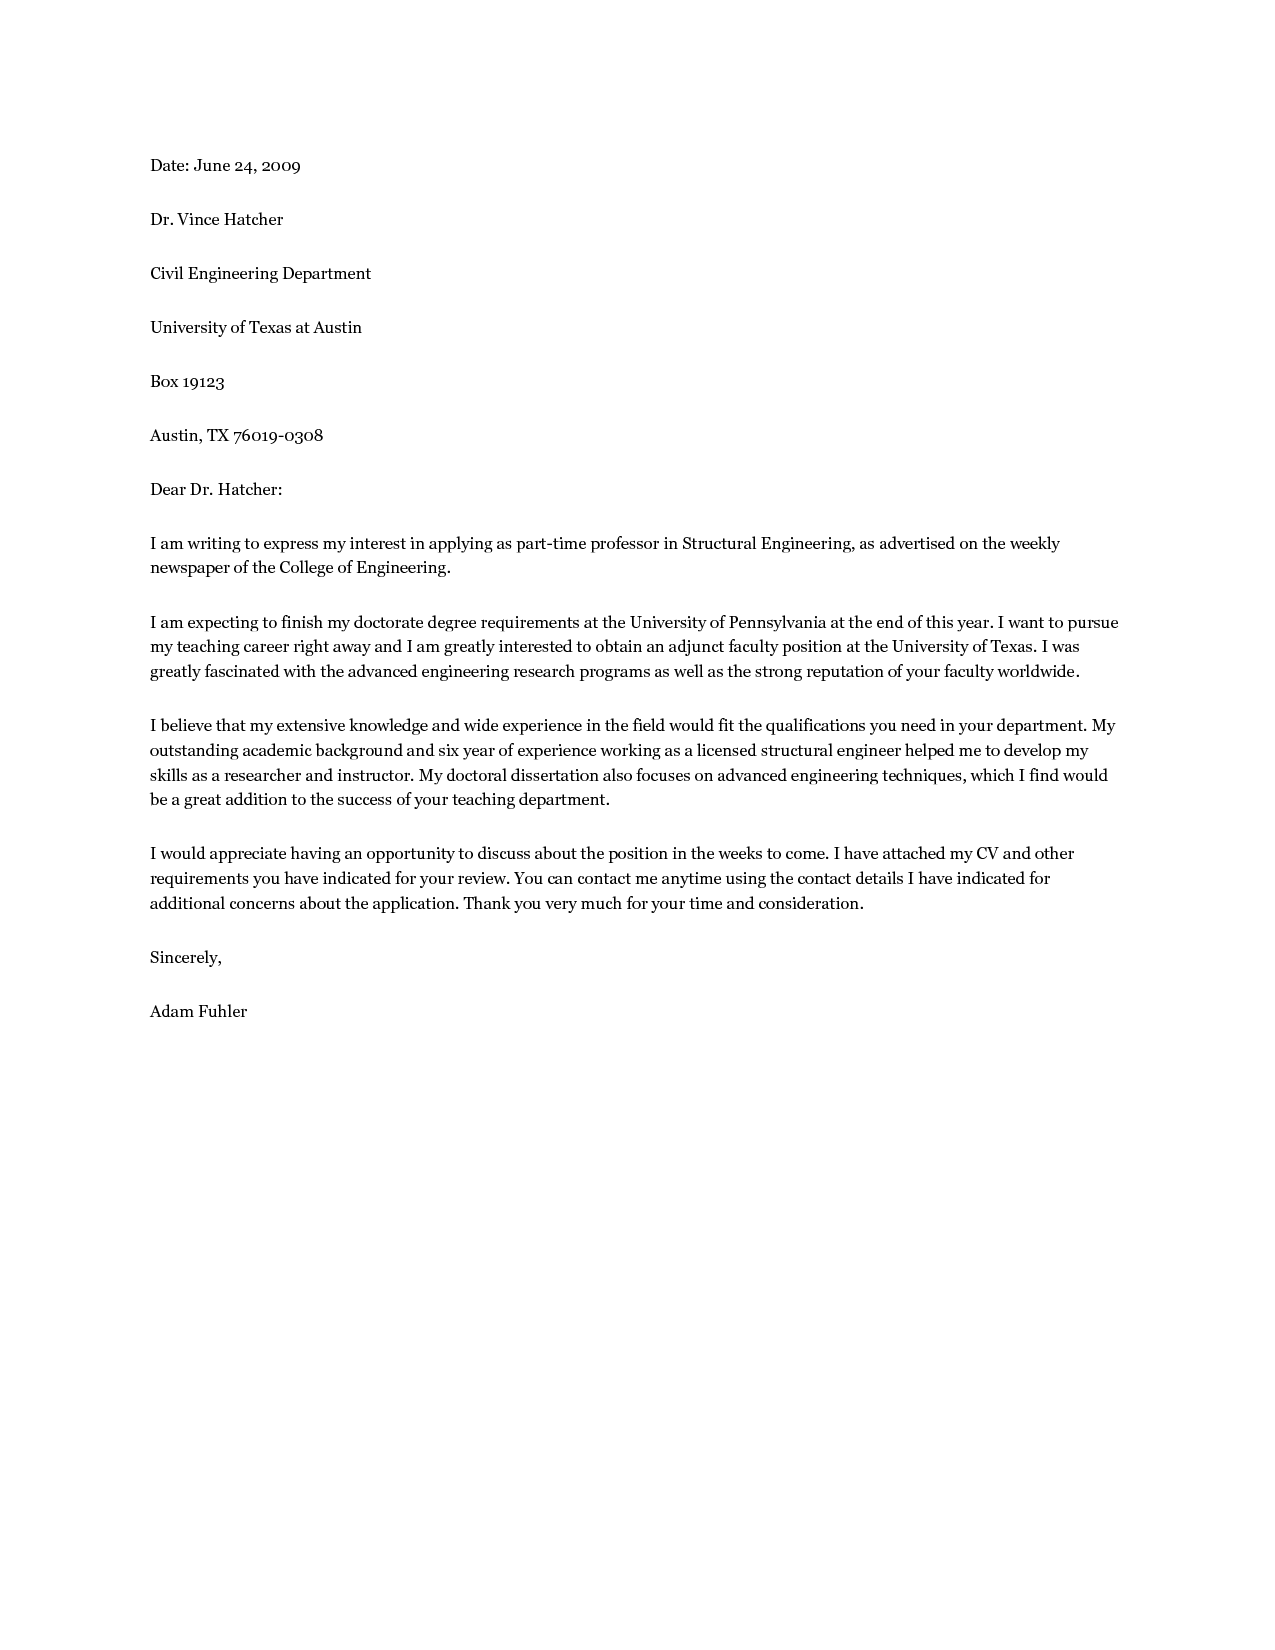 Cover Letter Sample For Professor | The Best Template